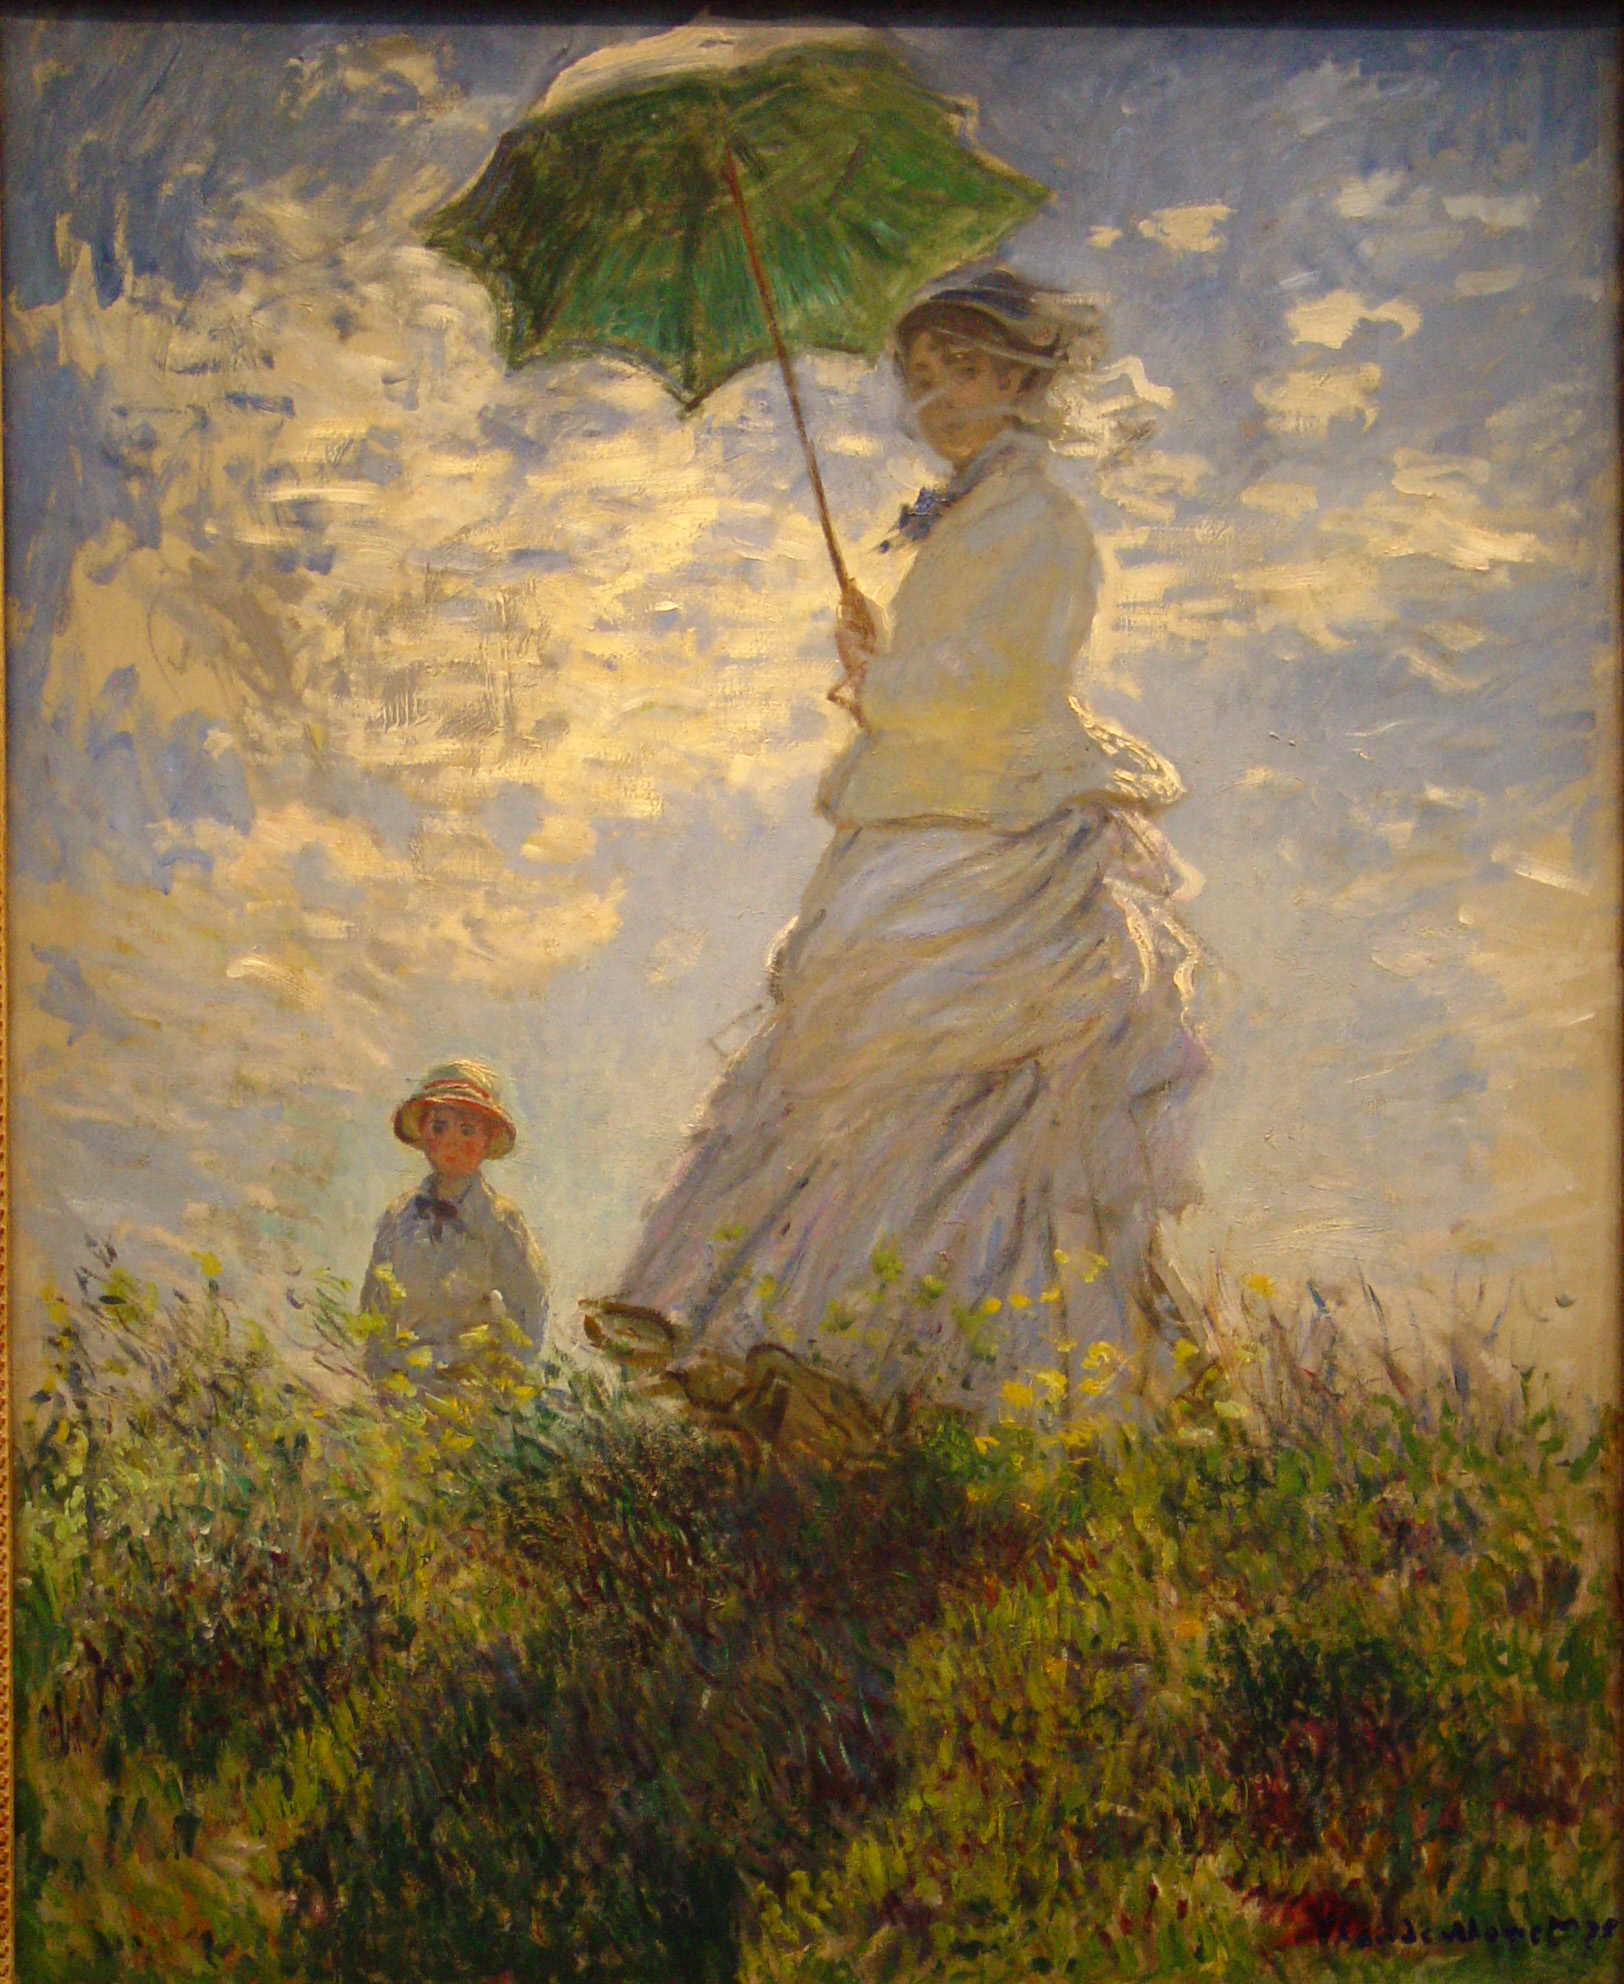 The umbrella by Monet